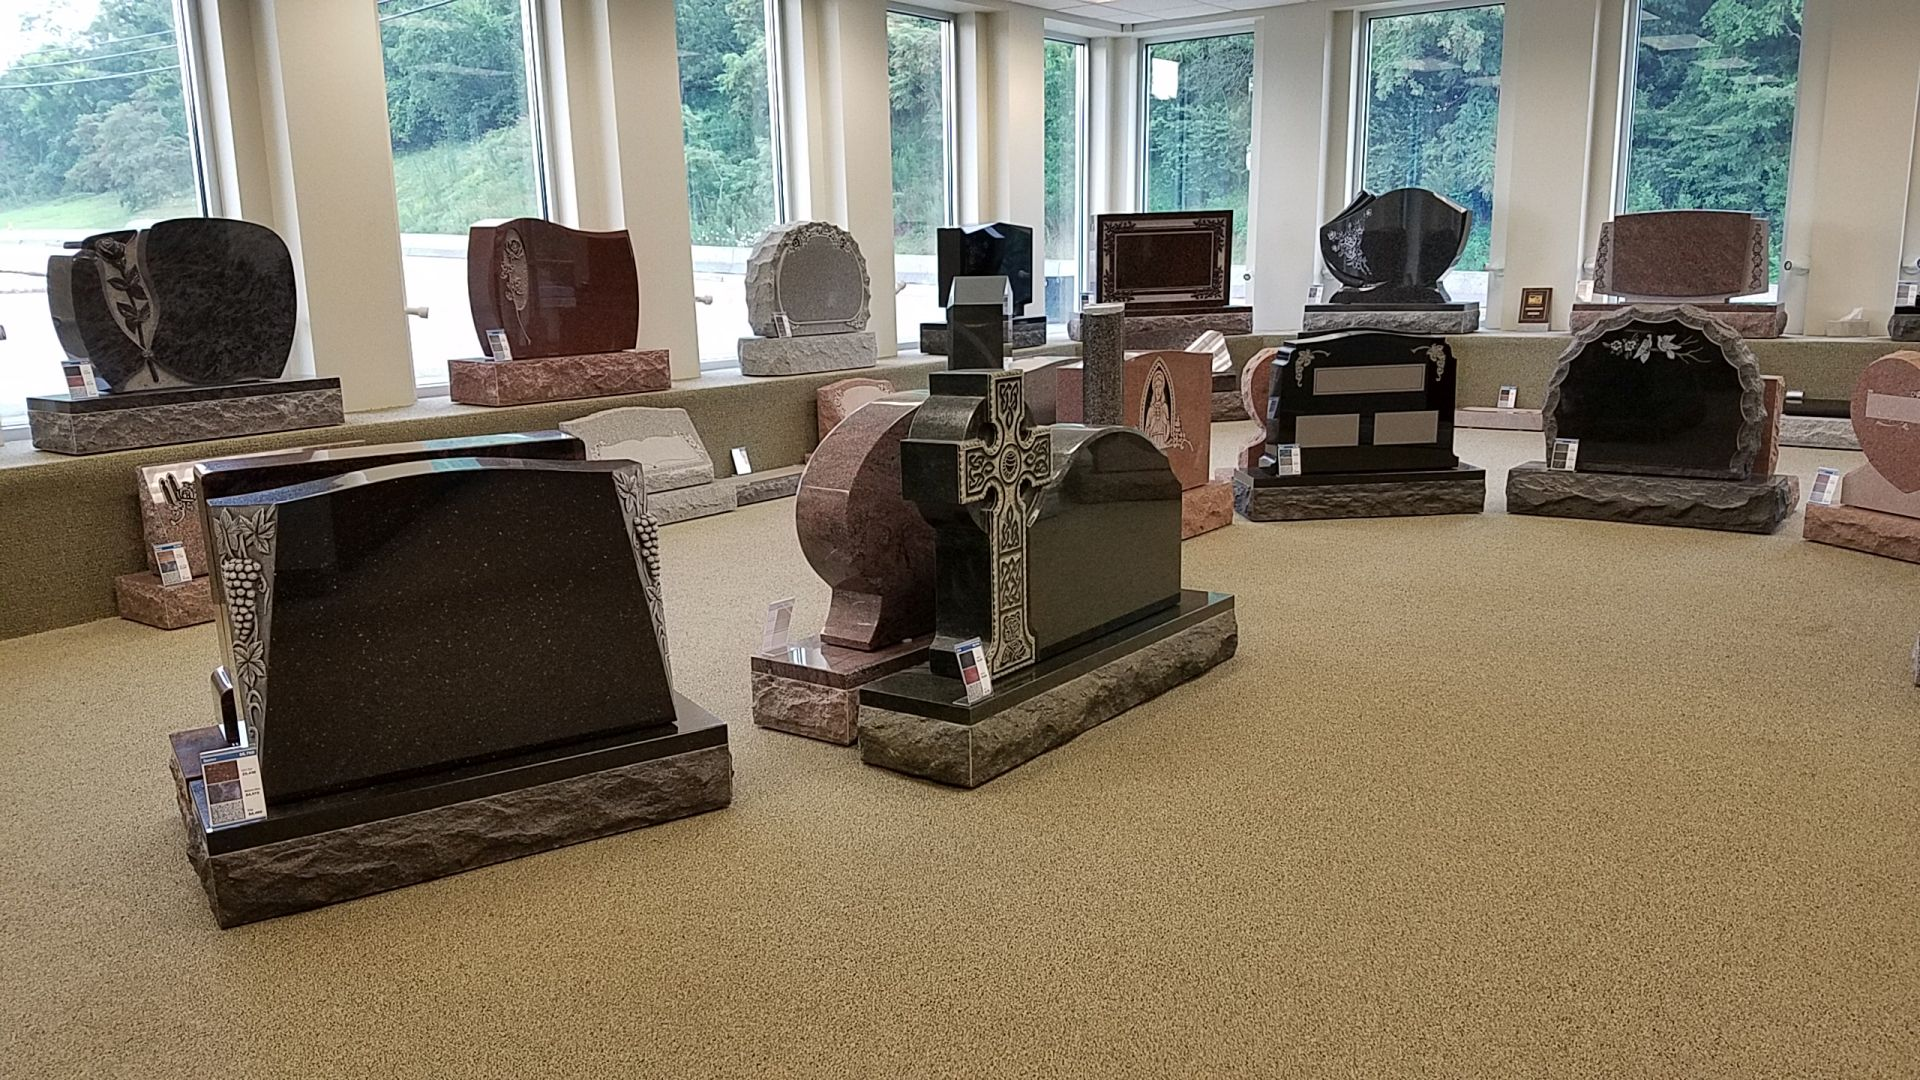 Selecting from Our Showroom | Rudez Granite